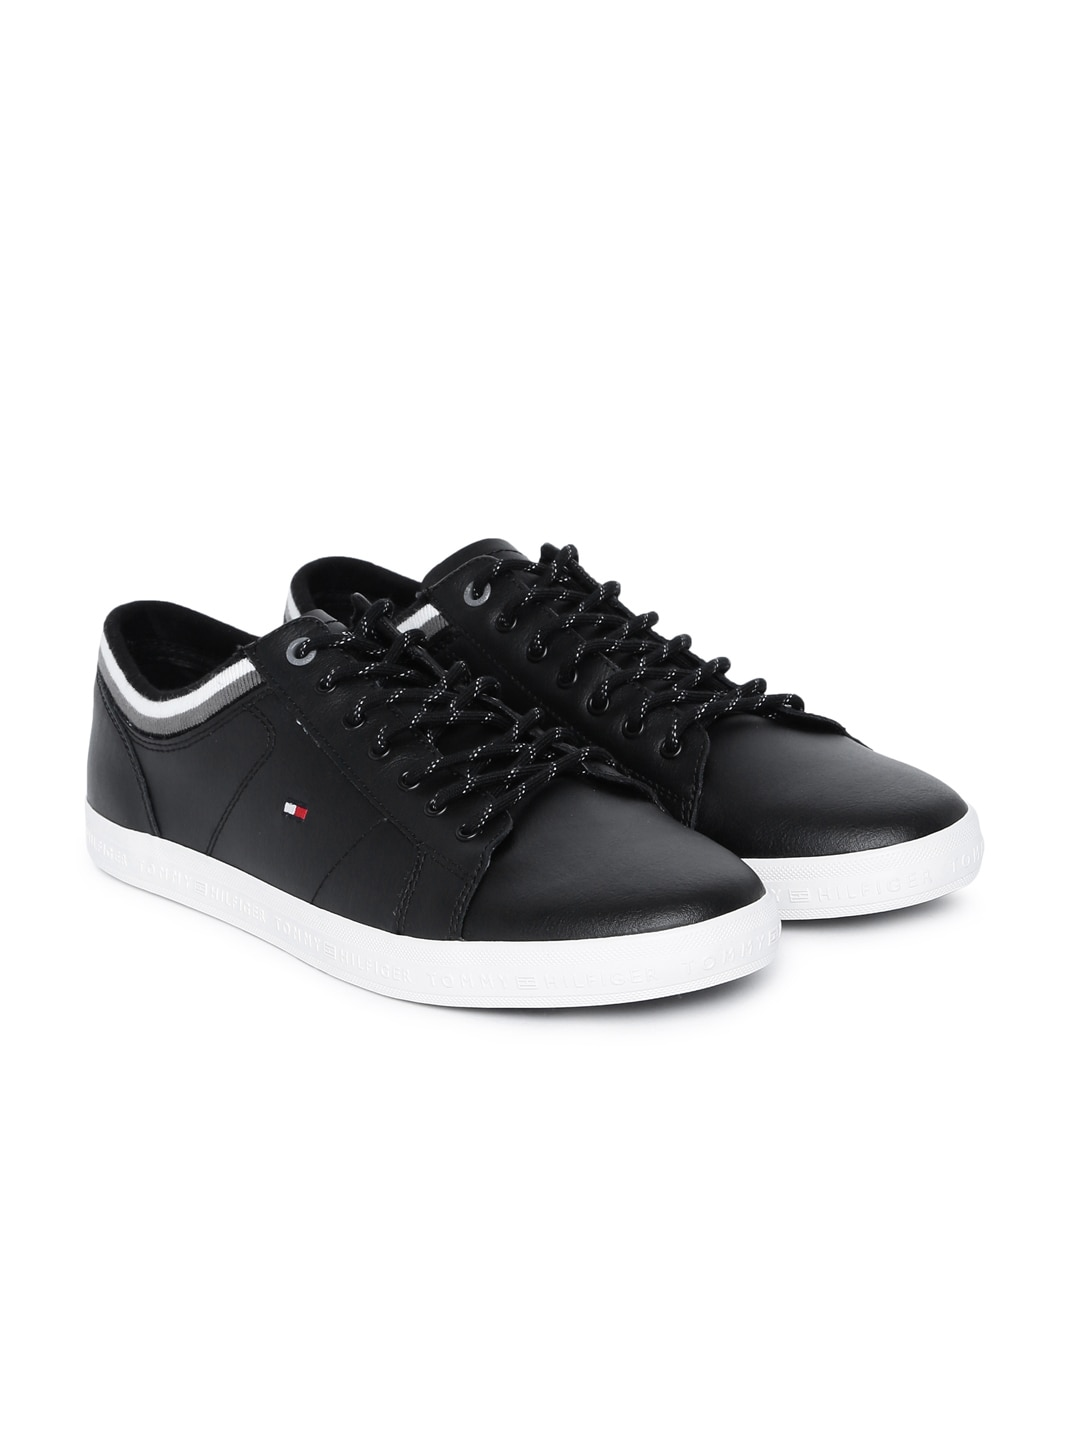 10bc624047df Tommy Hilfiger Shoes - Buy Tommy Hilfiger Shoes Online - Myntra